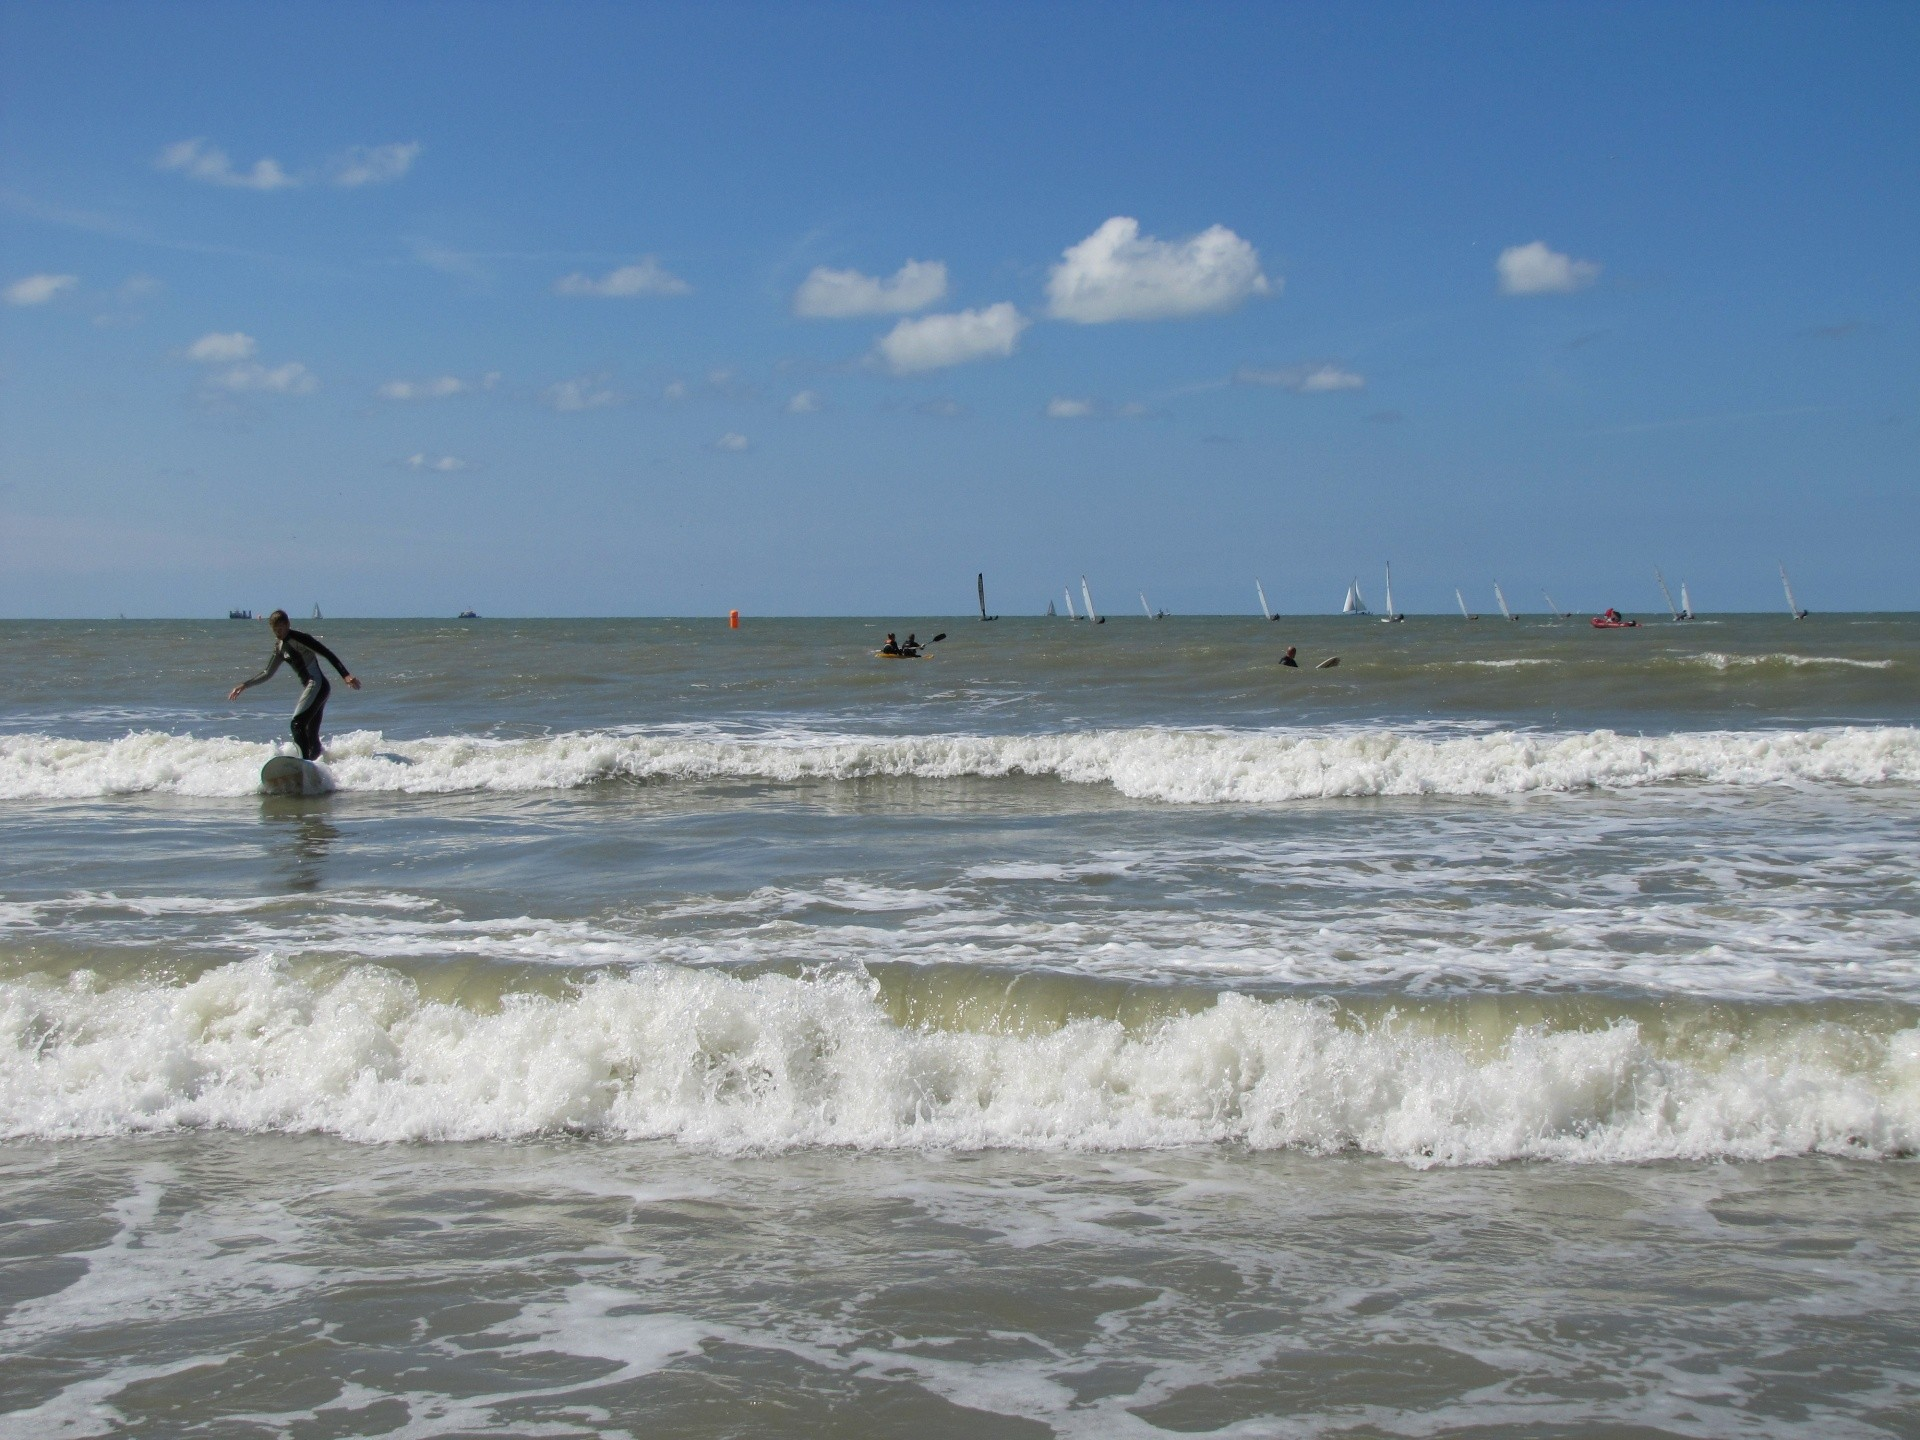 Wanda's photo of Bredene